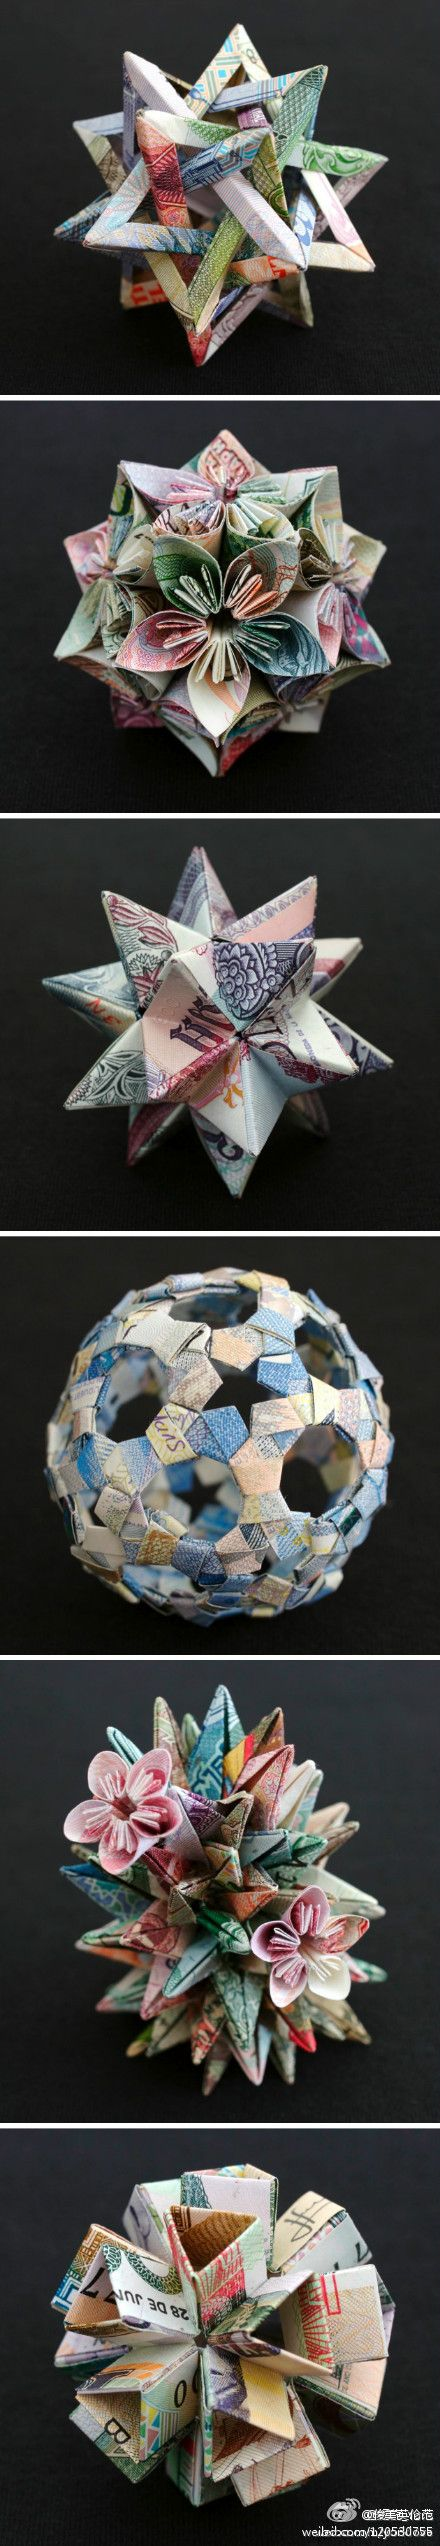 Origami flower ball, with money.